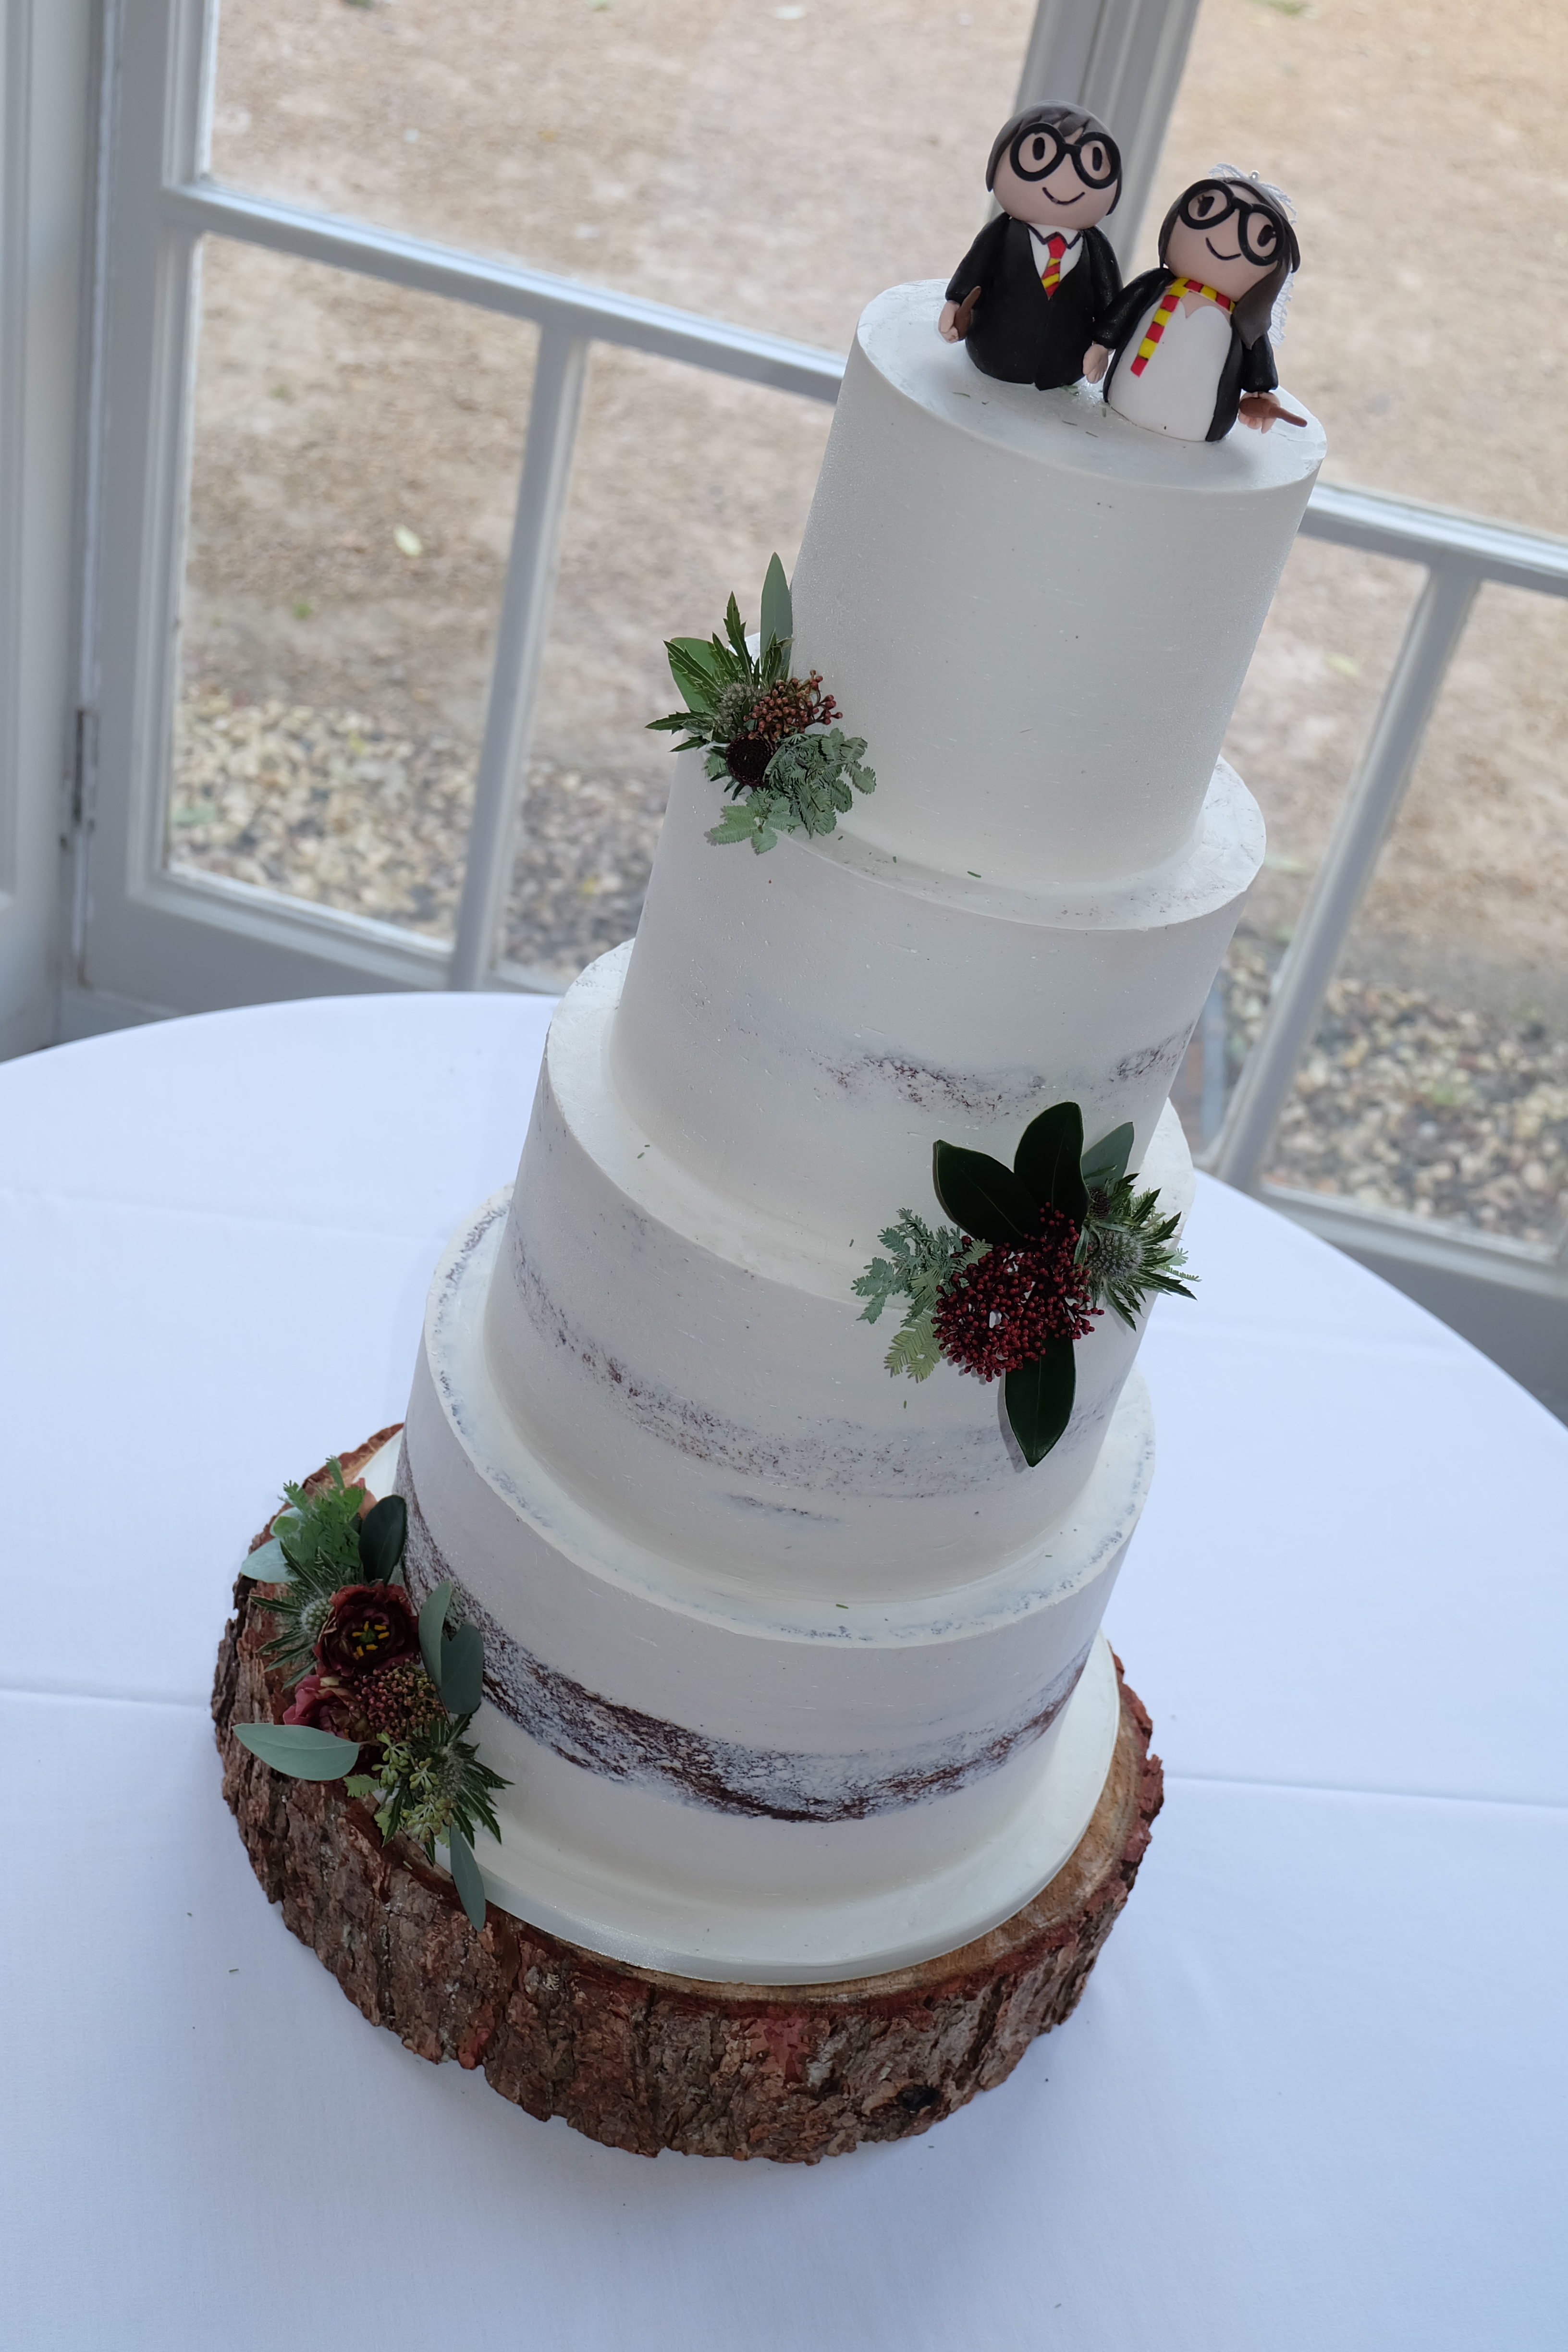 4 Tier Gradual Semi Naked Wedding Cake w